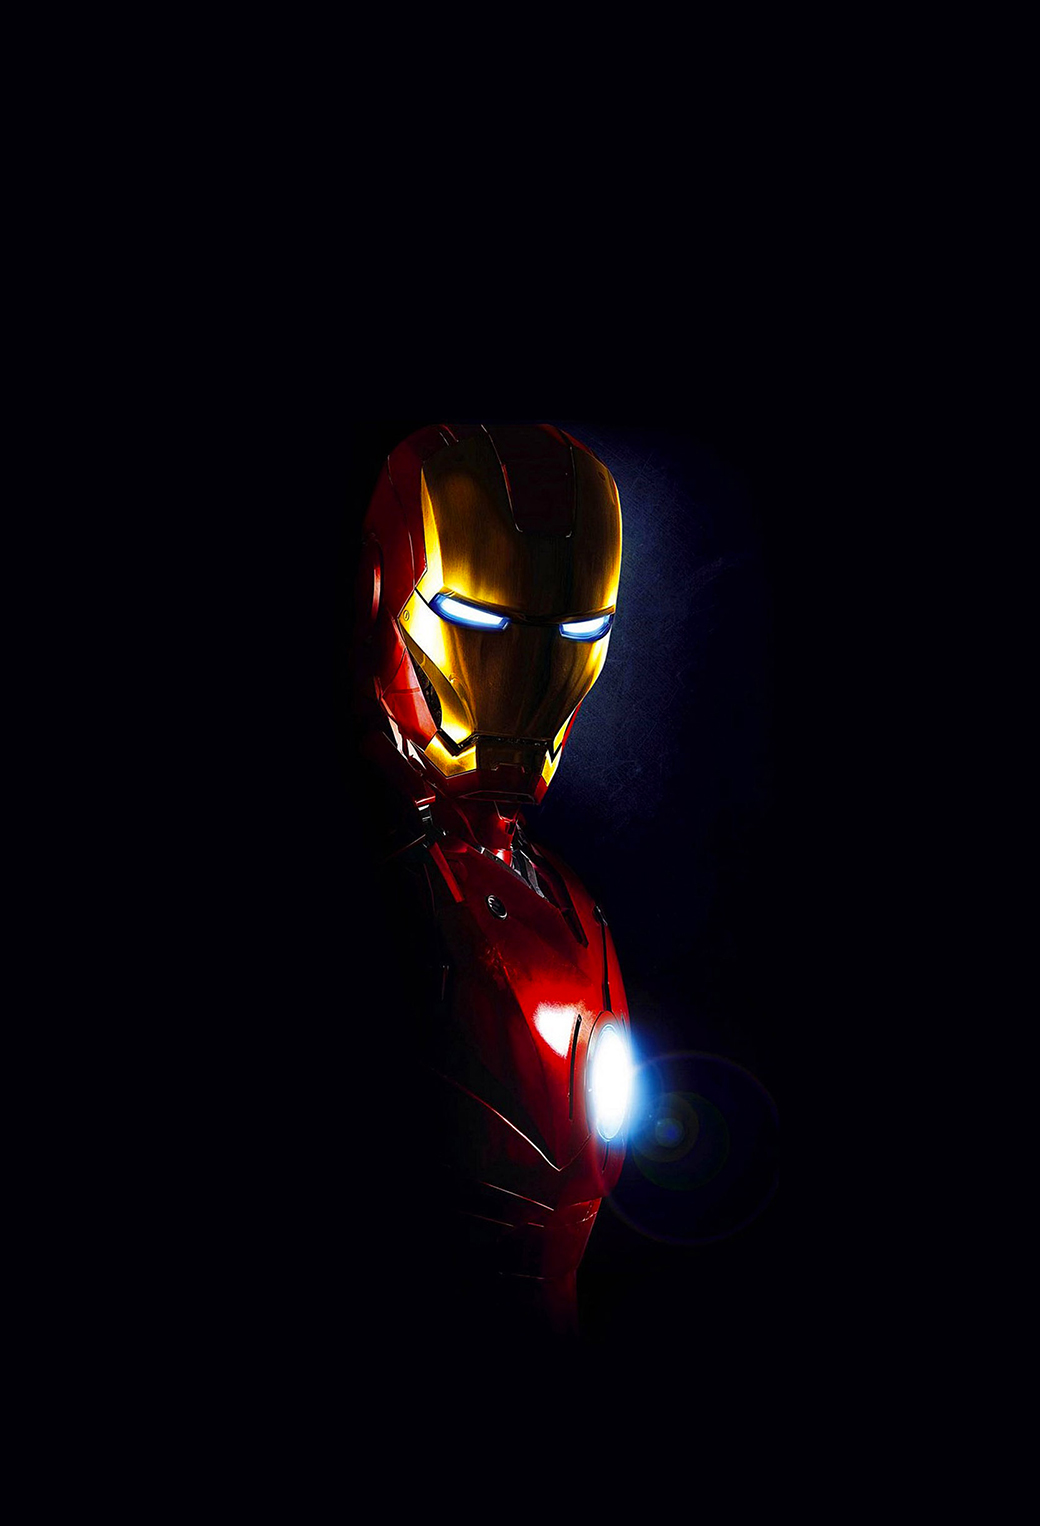 Iron man in dark wallpaper for iphone x 8 7 6 free for Fond ecran sombre